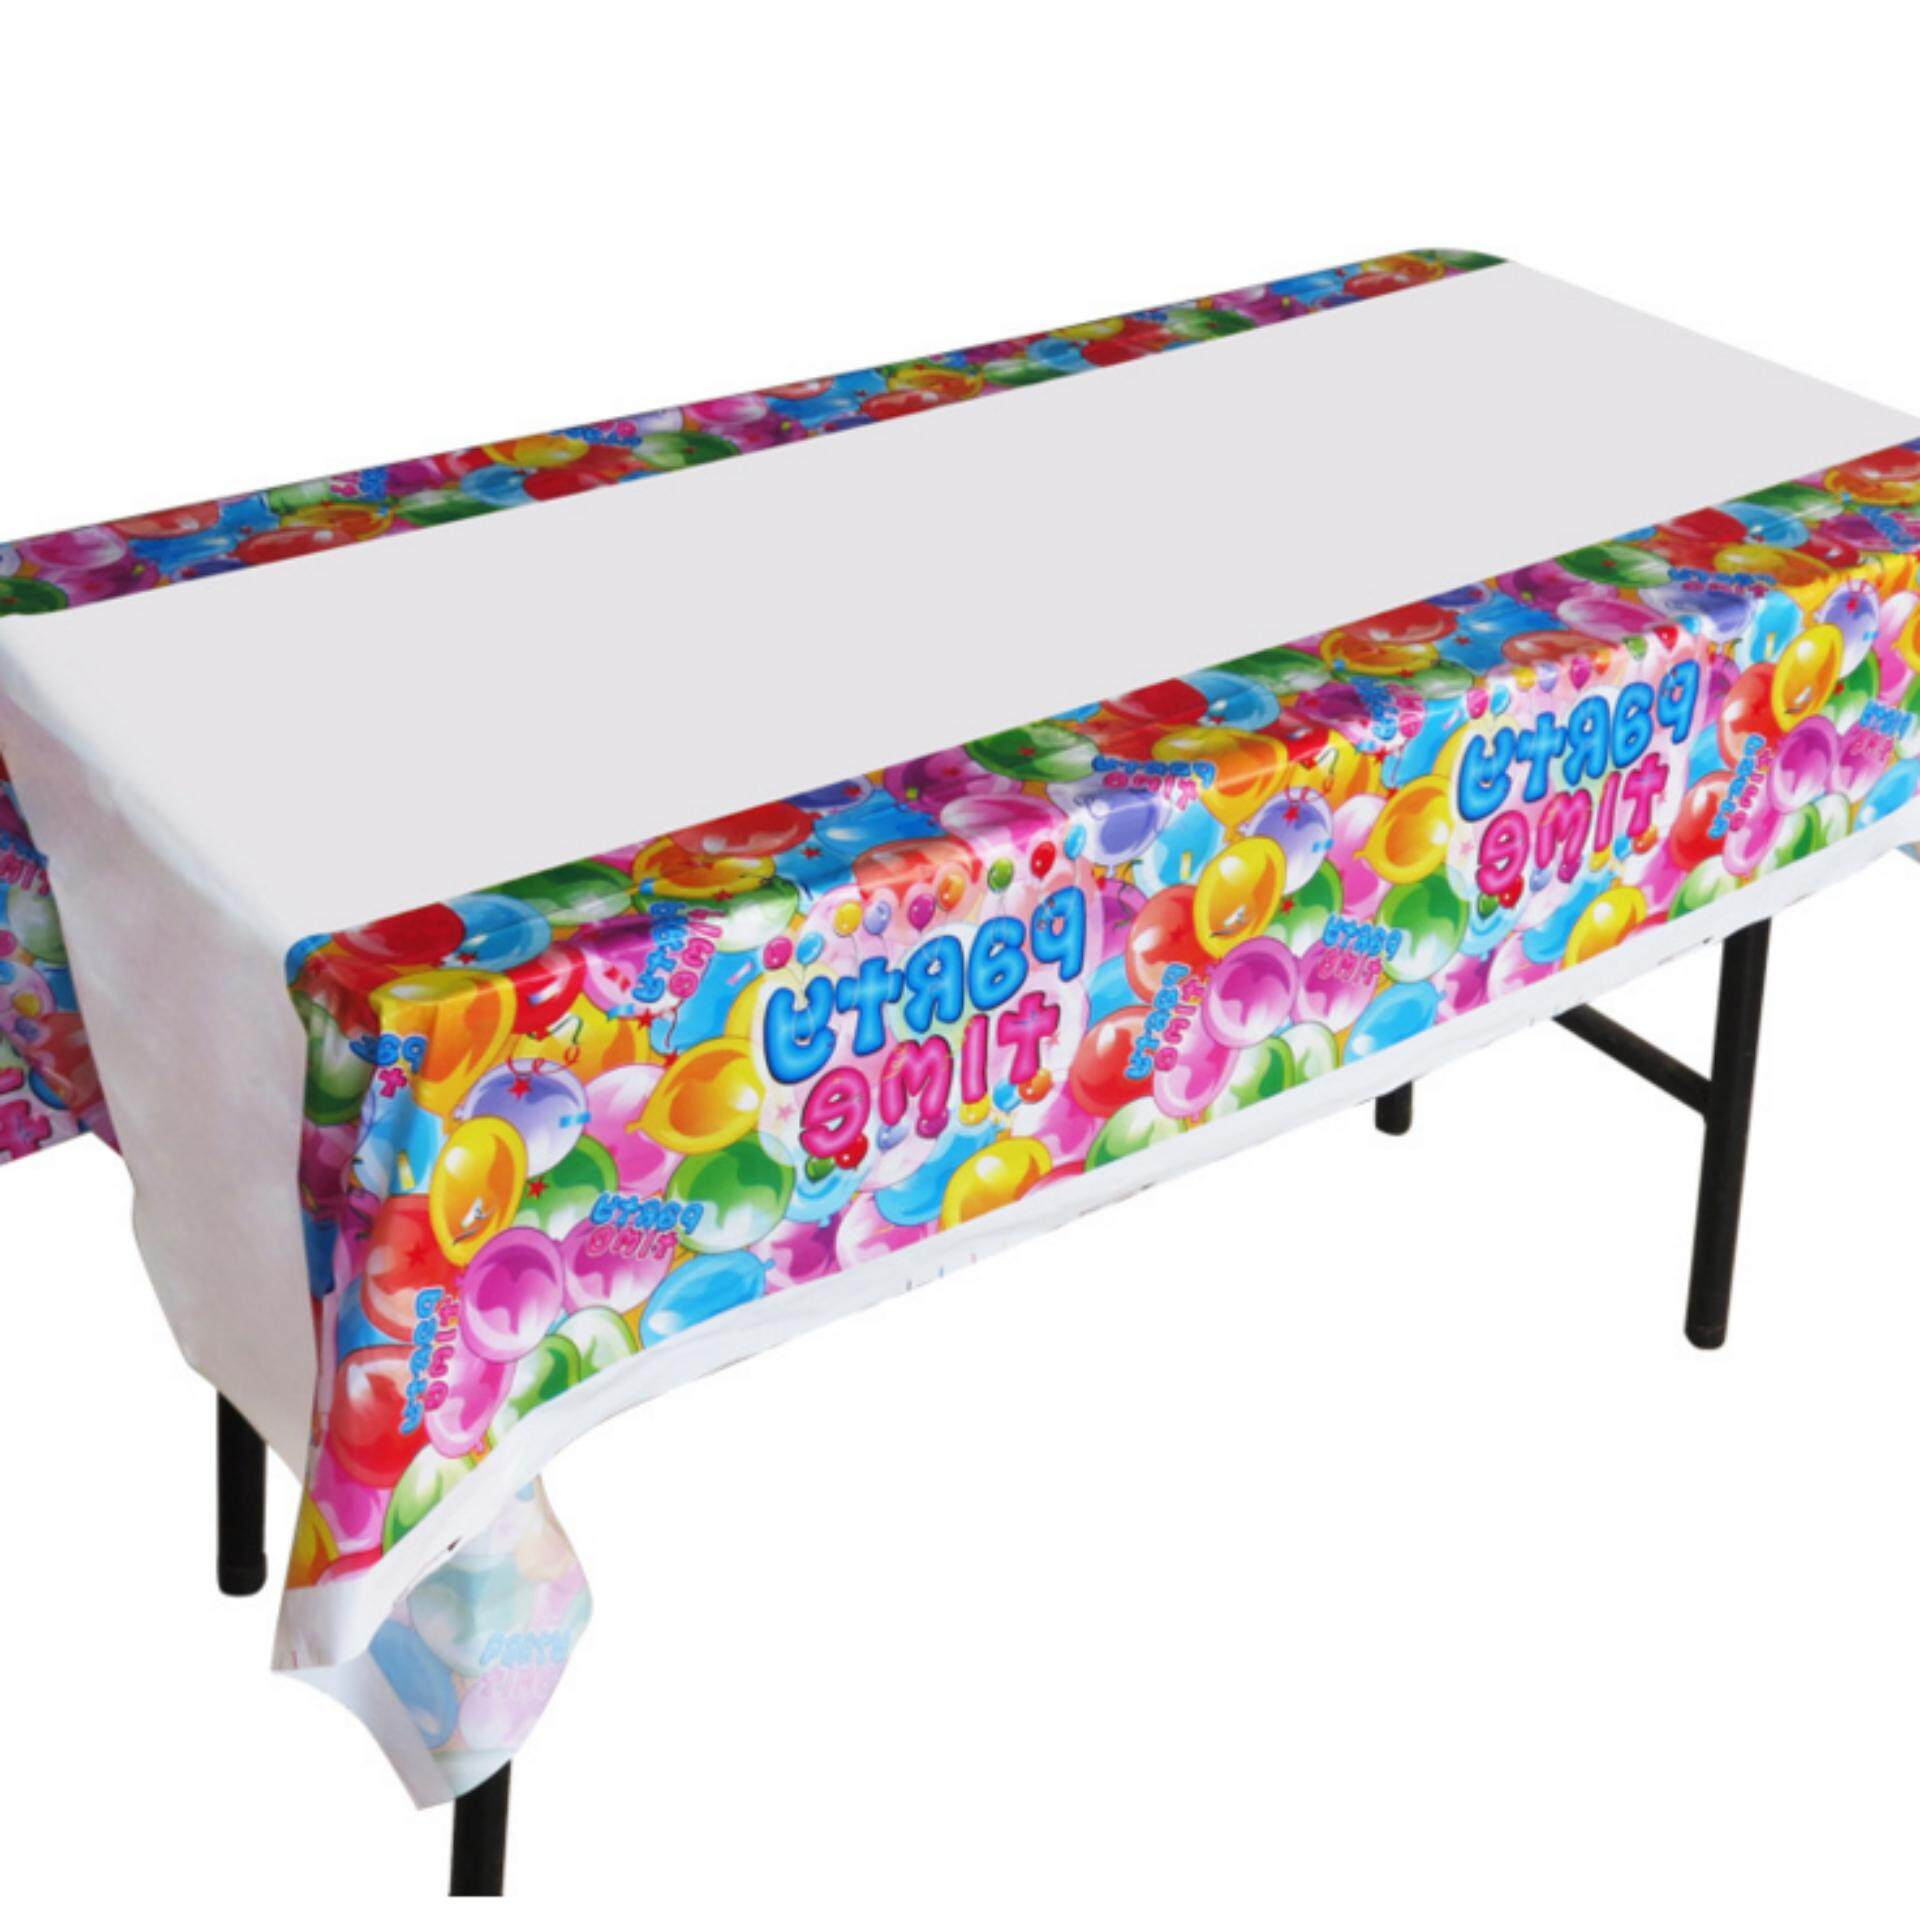 1pc Disposable Plastic Birthday Table Cover Cloth For Kids Birthday Party  Decoration Boy Girl Baby Shower